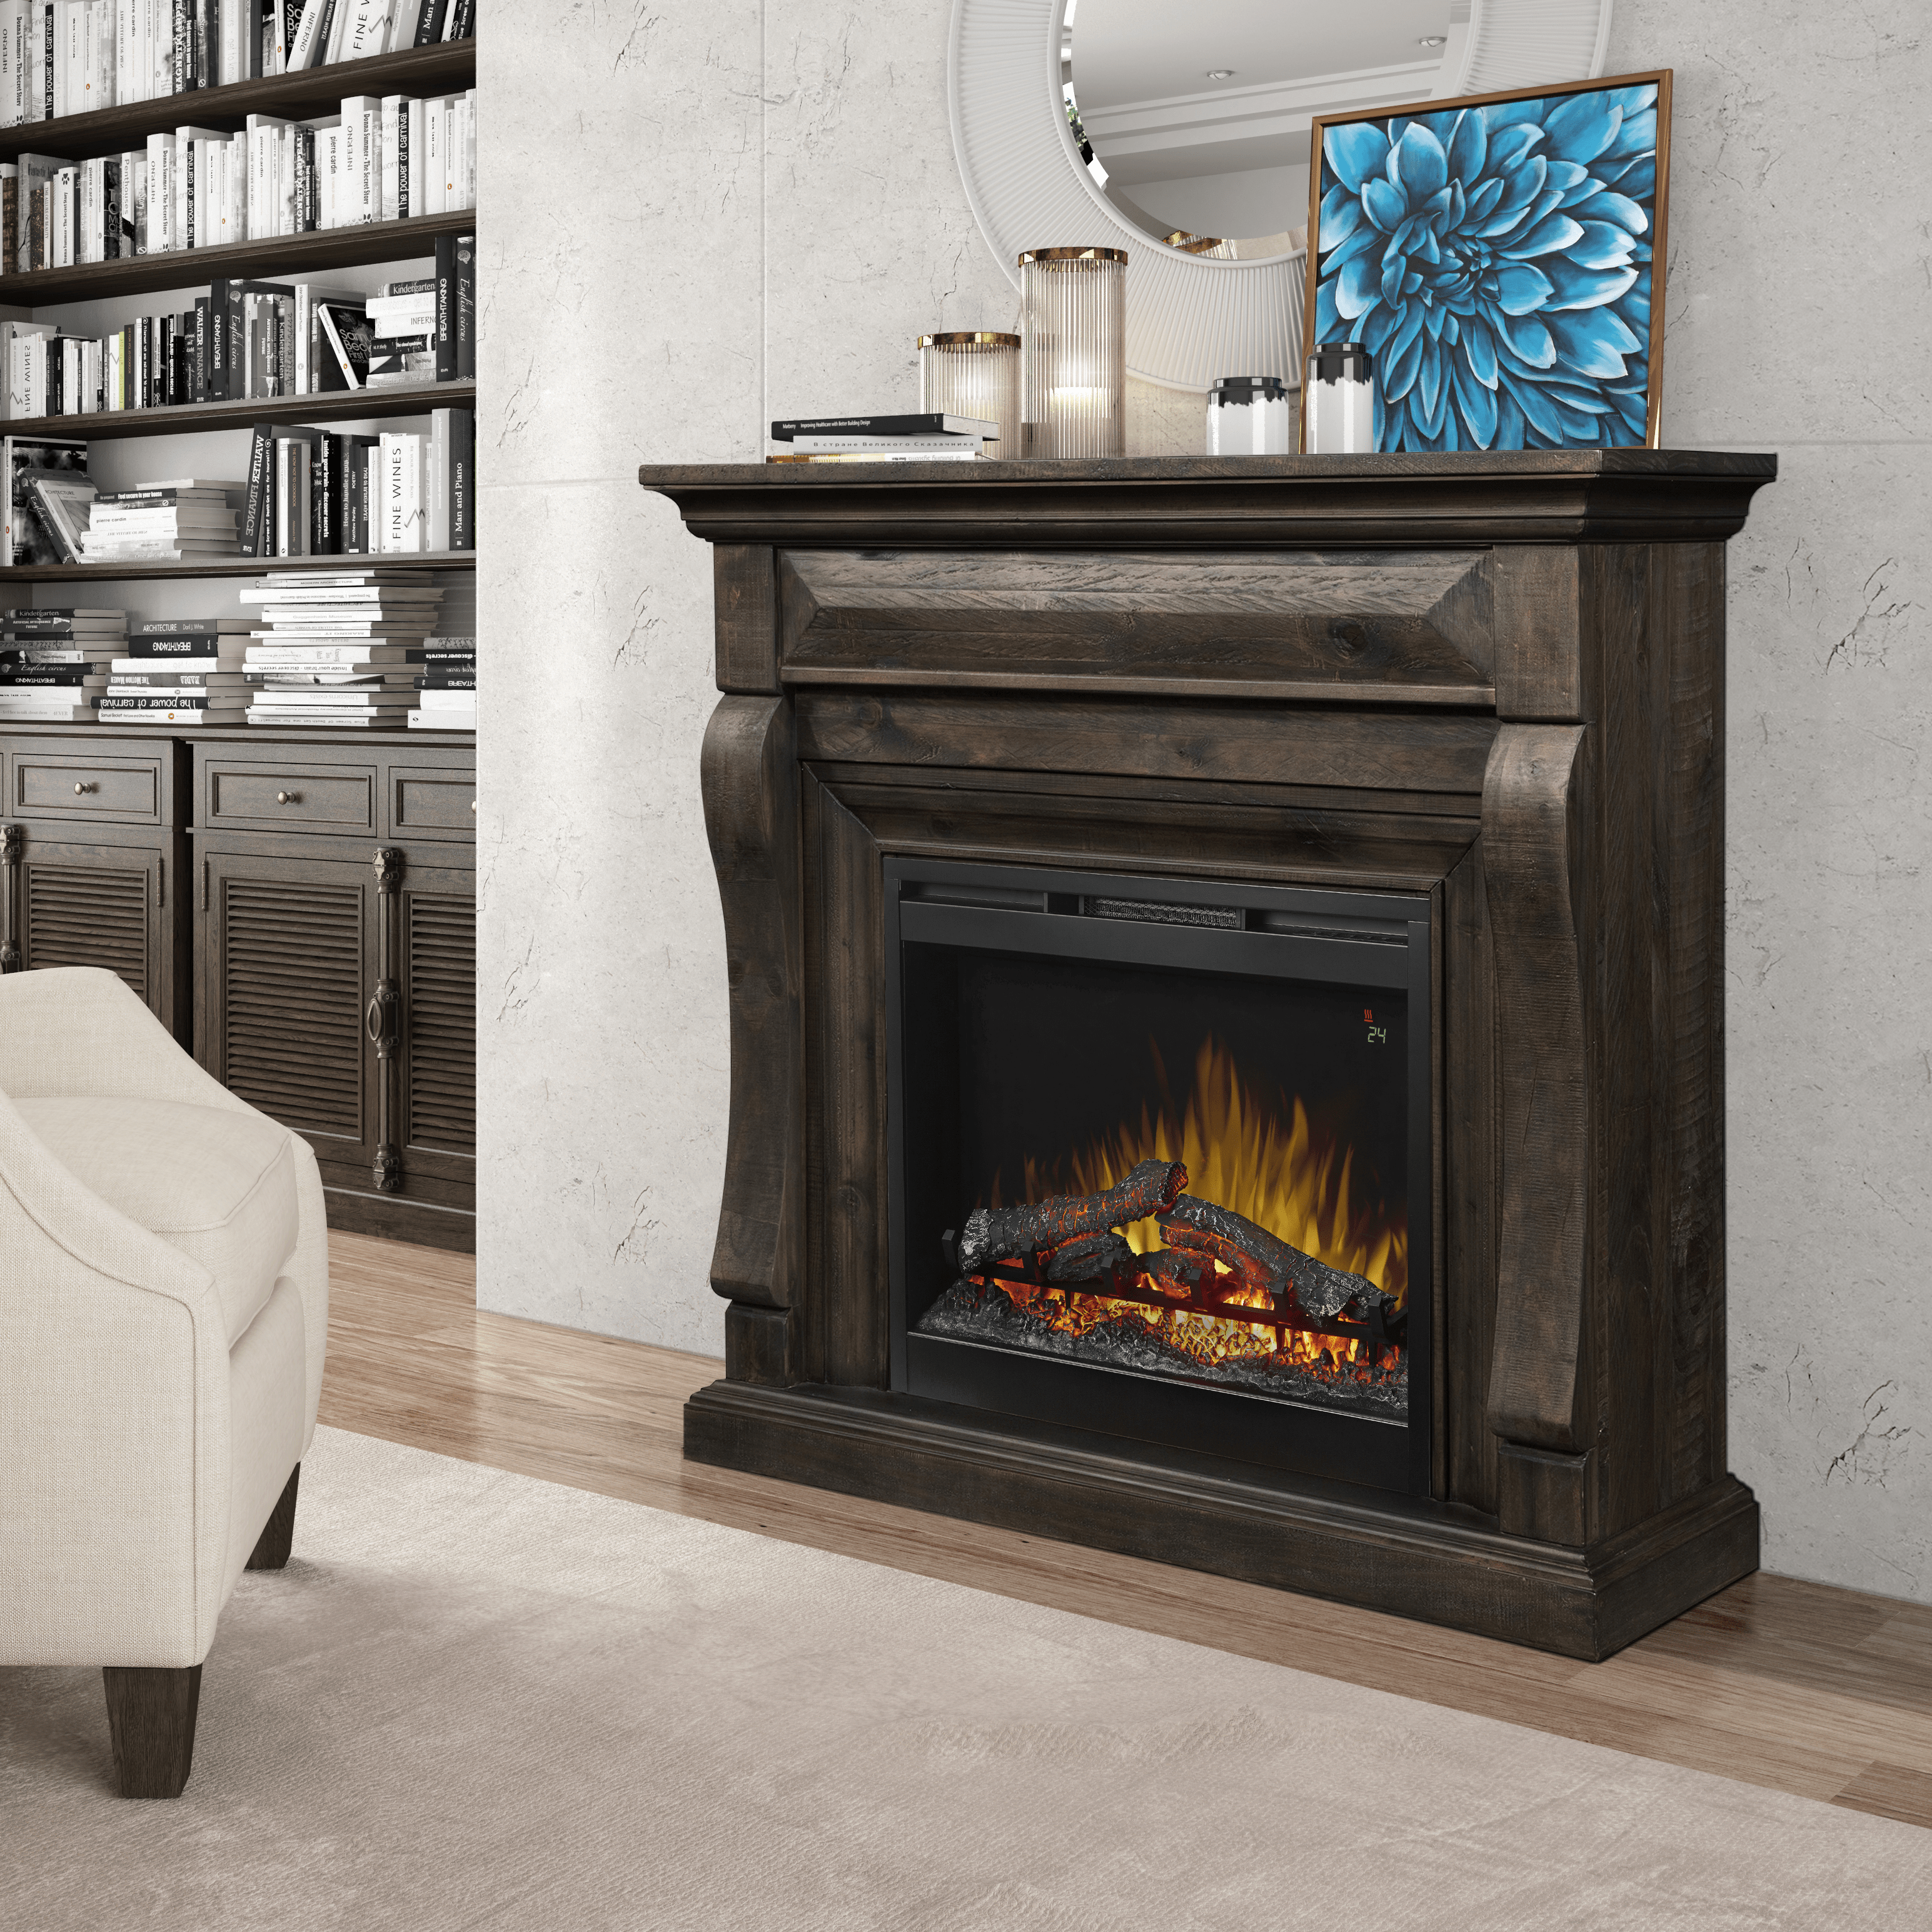 electric firebox fireplaces stand tv decor the modena log with fireplace furniture white search home accent brick